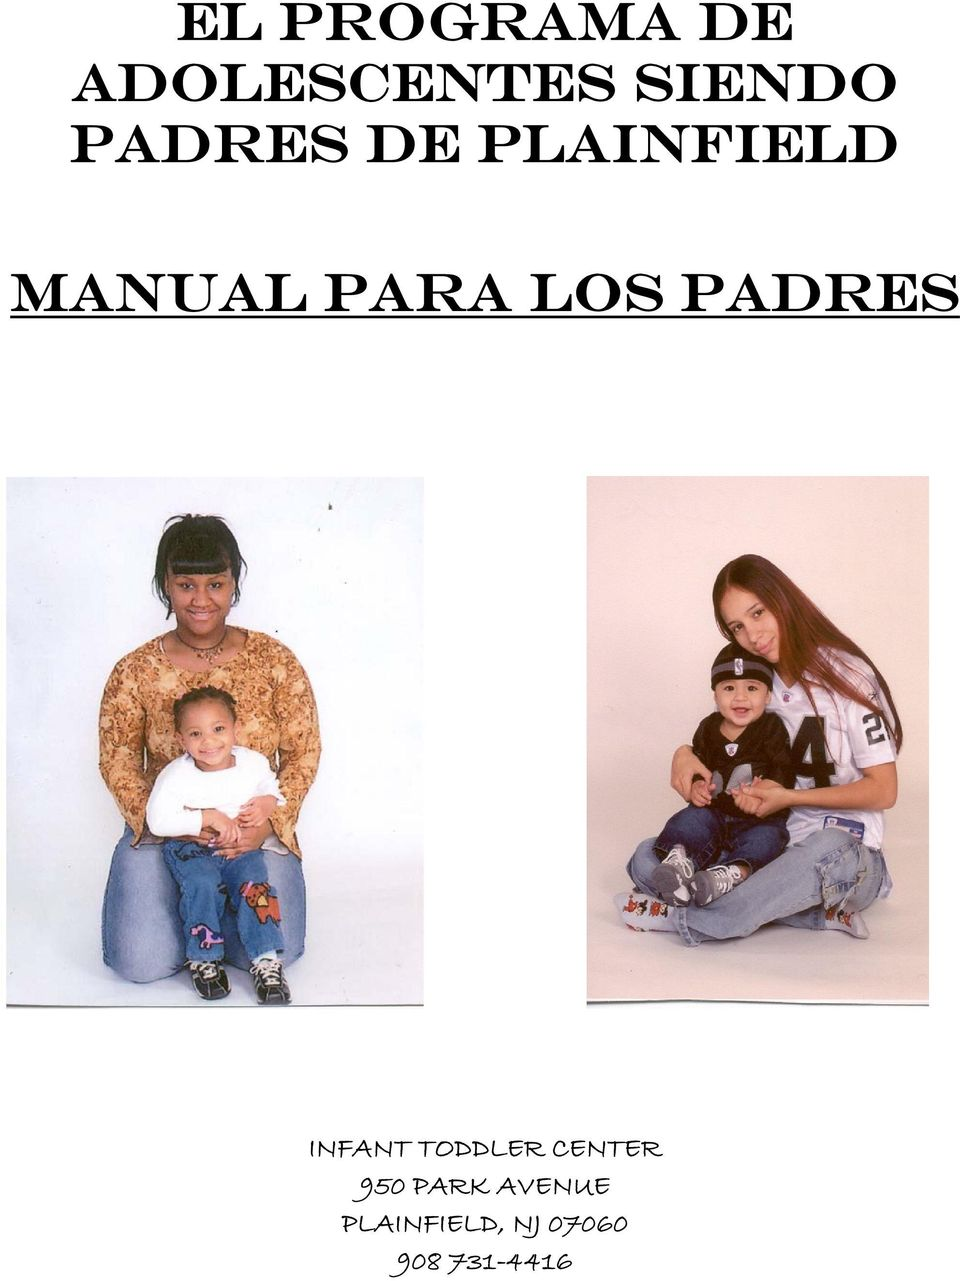 PADRES INFANT TODDLER CENTER 950 PARK